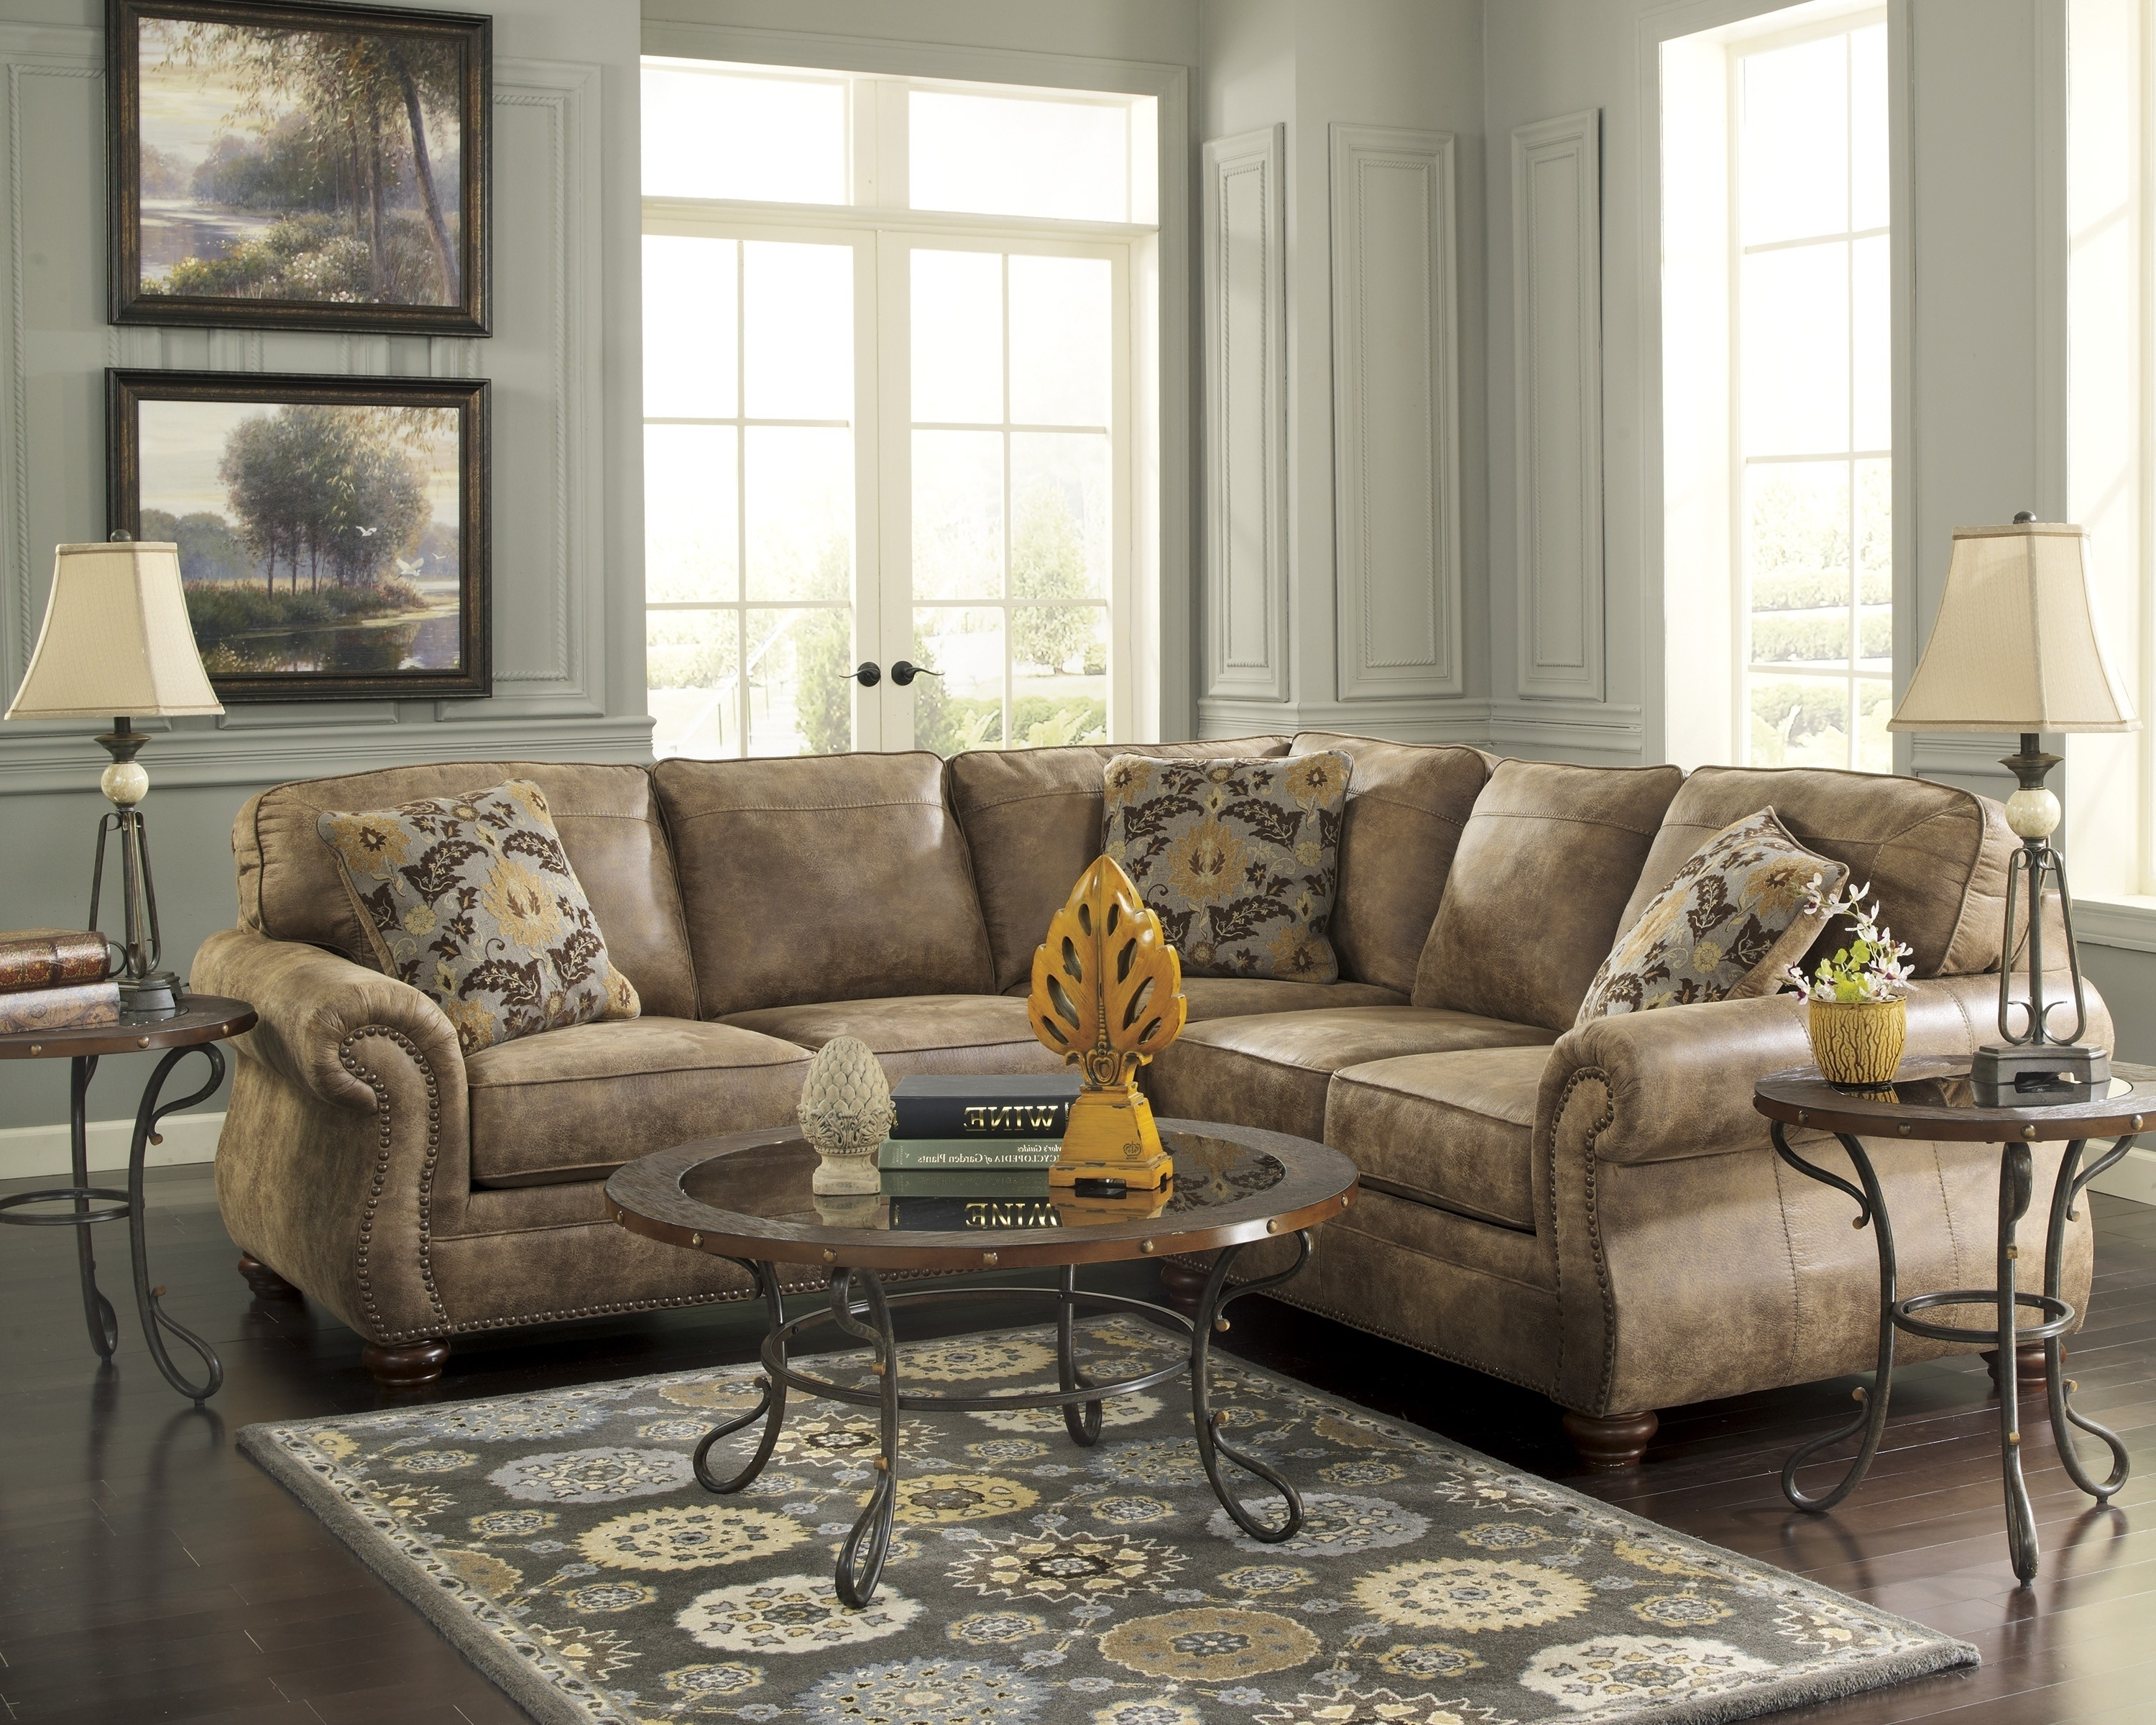 Stunning Sectional Sofas Tucson 90 For Your Olive Green Sectional With Regard To Tucson Sectional Sofas (Image 8 of 10)